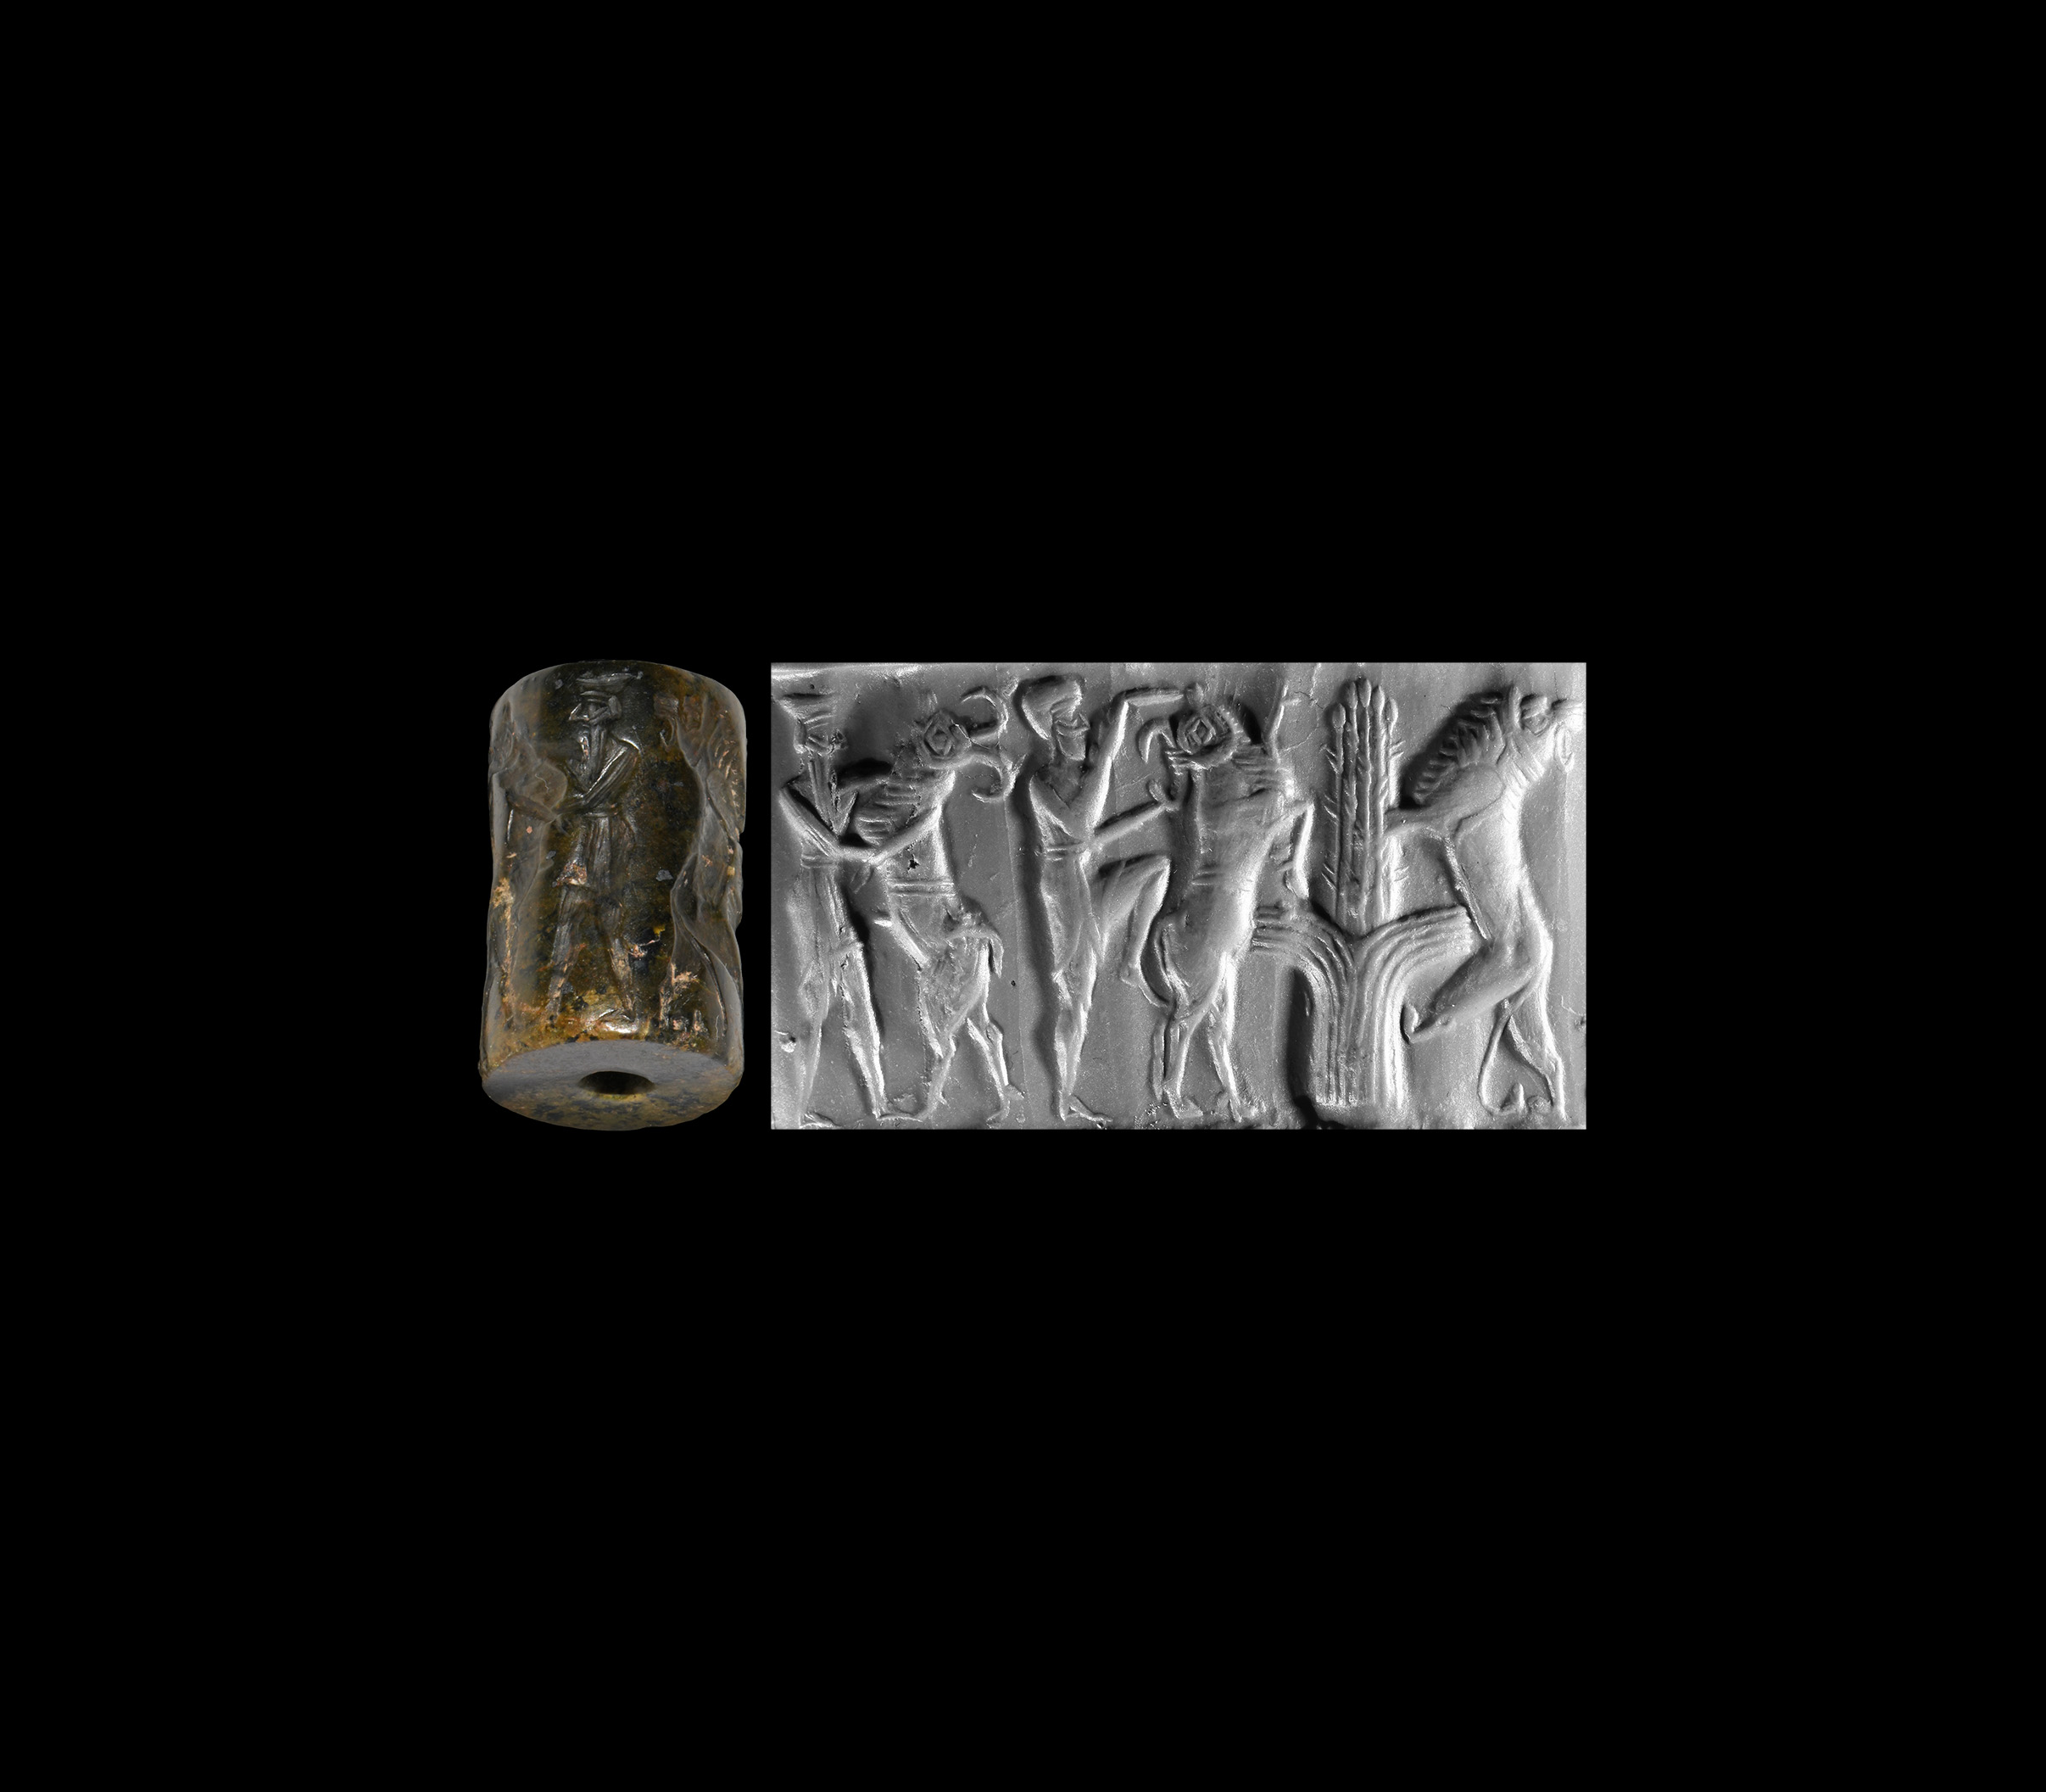 Western Asiatic Akkadian Cylinder Seal with Contest Scene